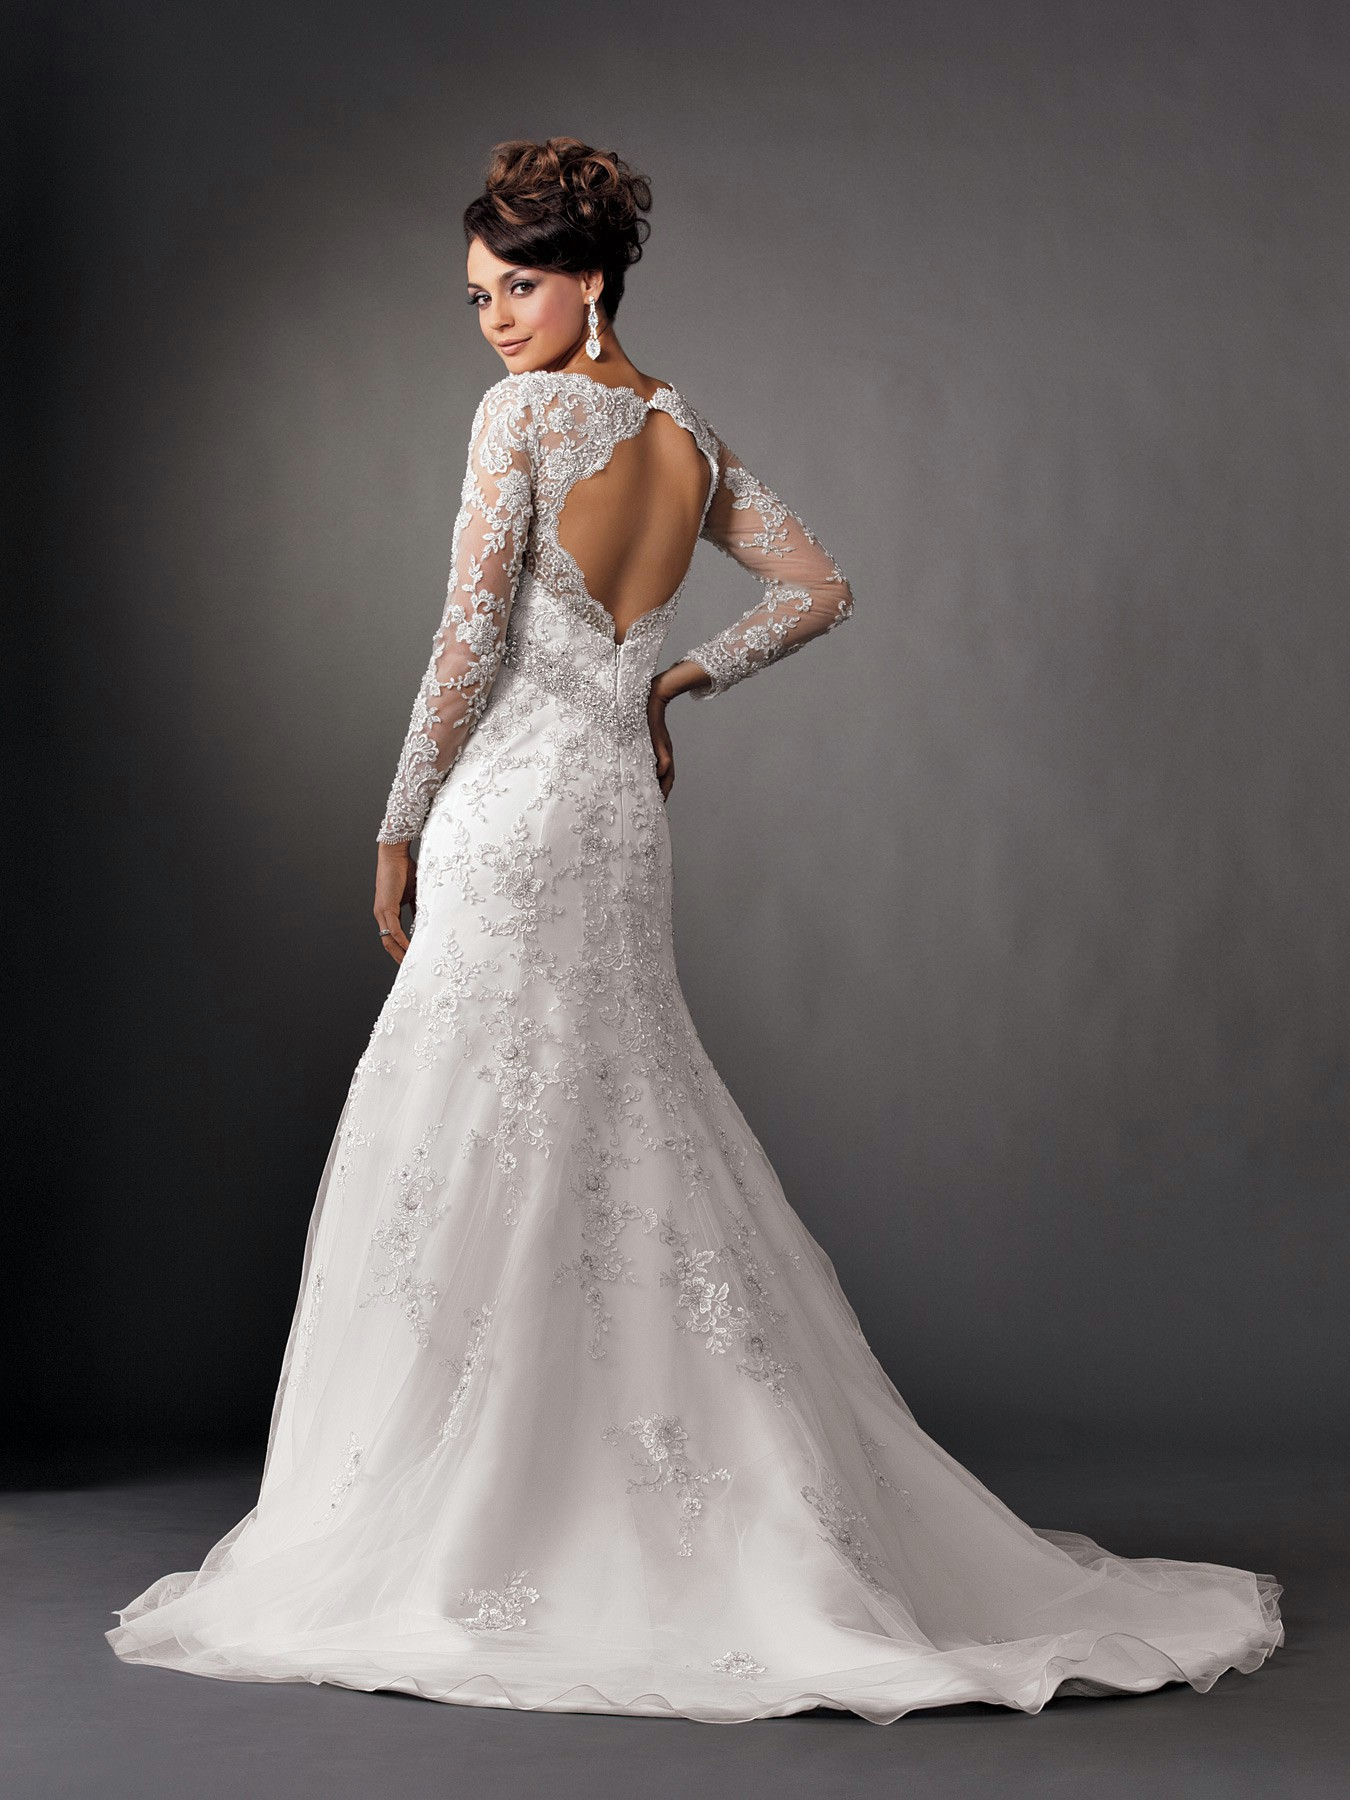 Elegant Photos Of Beautiful Mermaid Wedding Dresses With